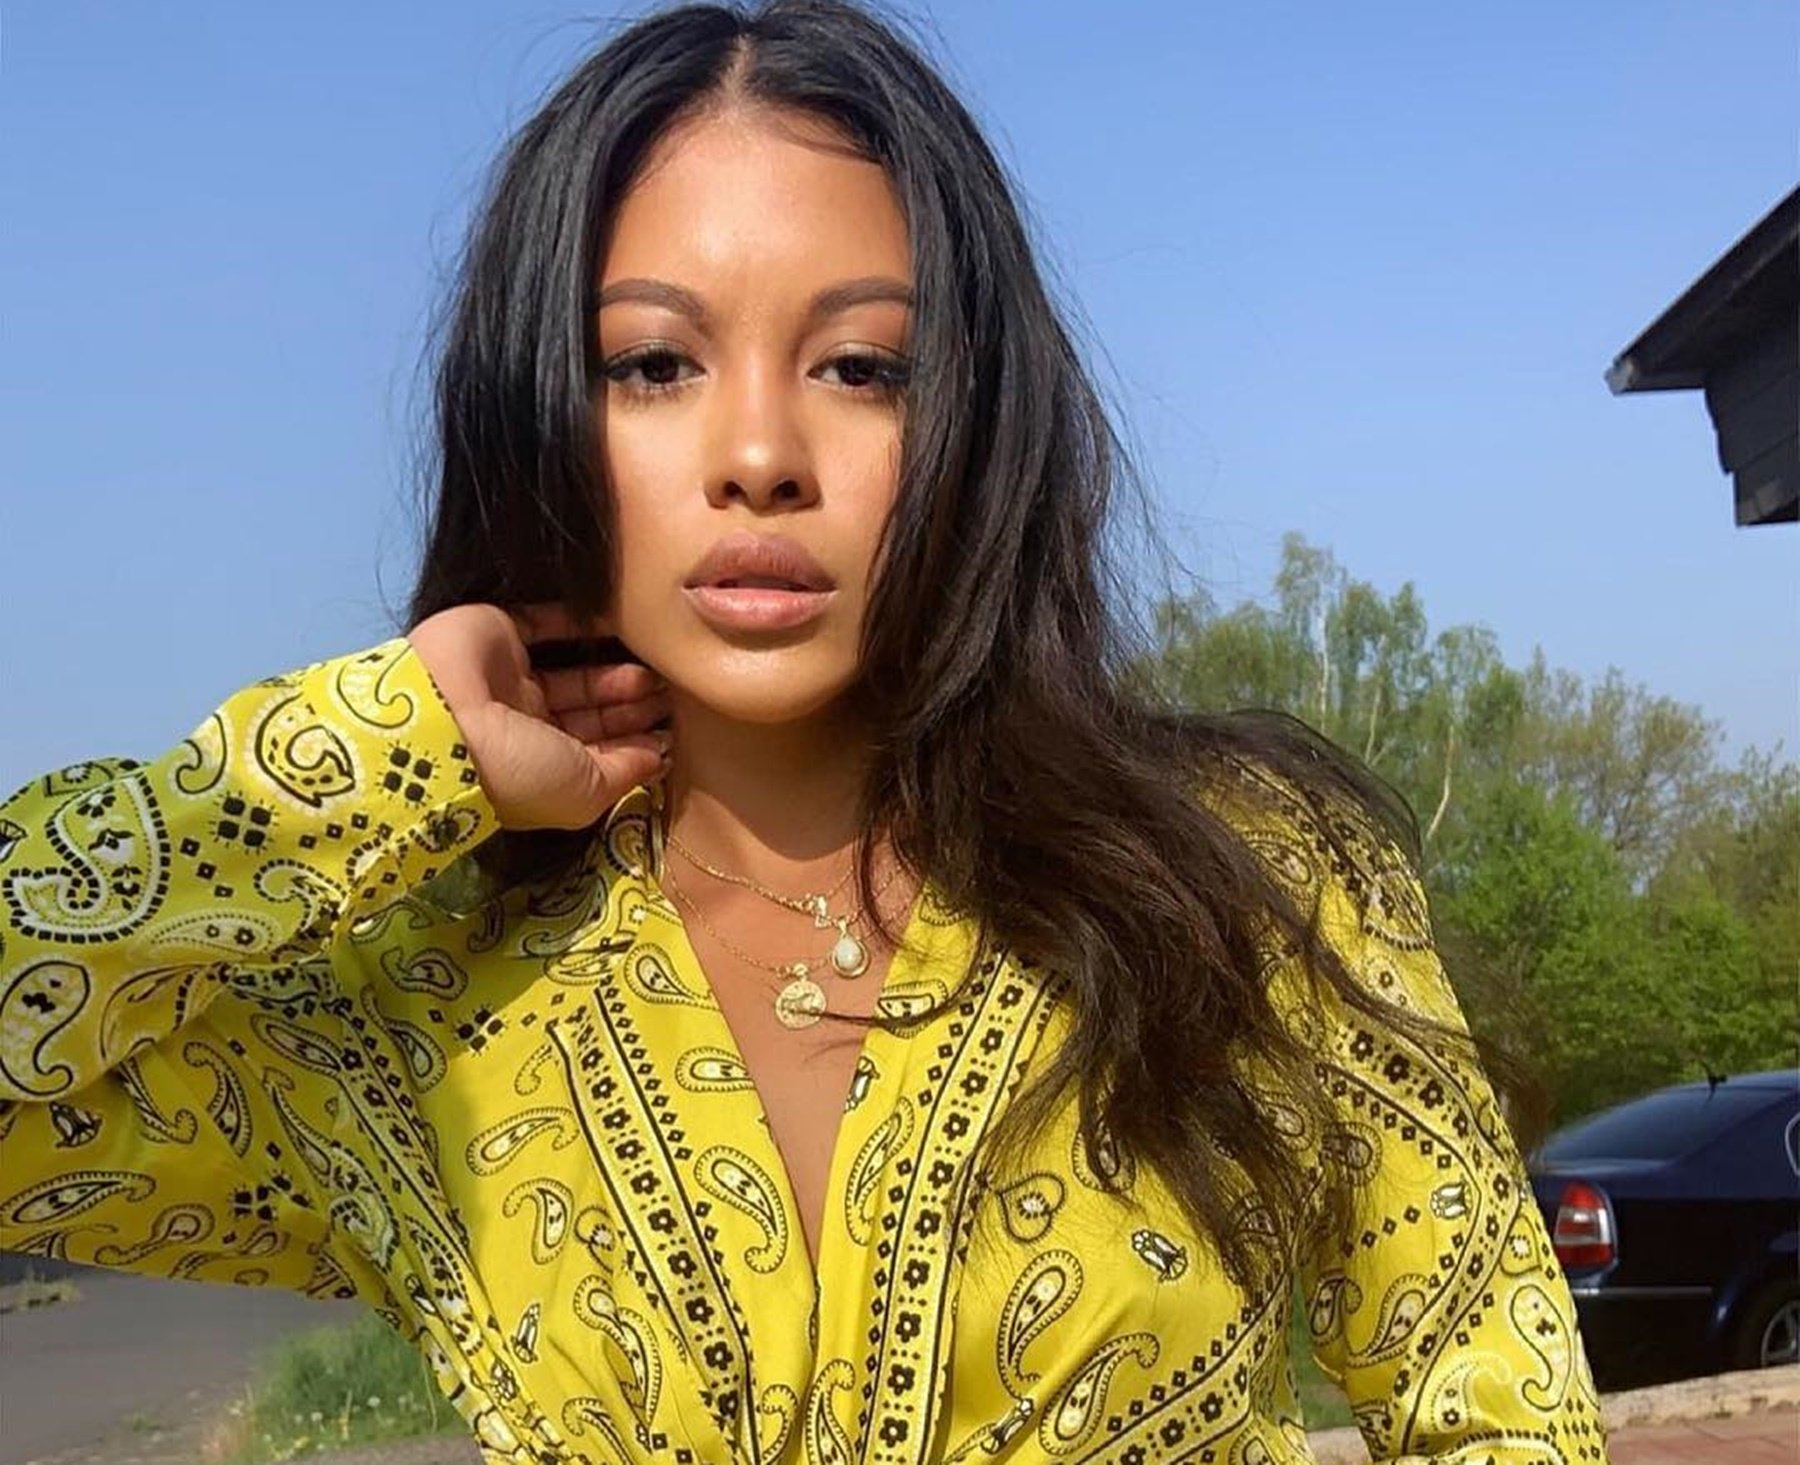 Chris Brown's Baby Mama, Ammika Harris Shows Off A Lot Of Skin In This New Challenge – See Her Deep Cleavage